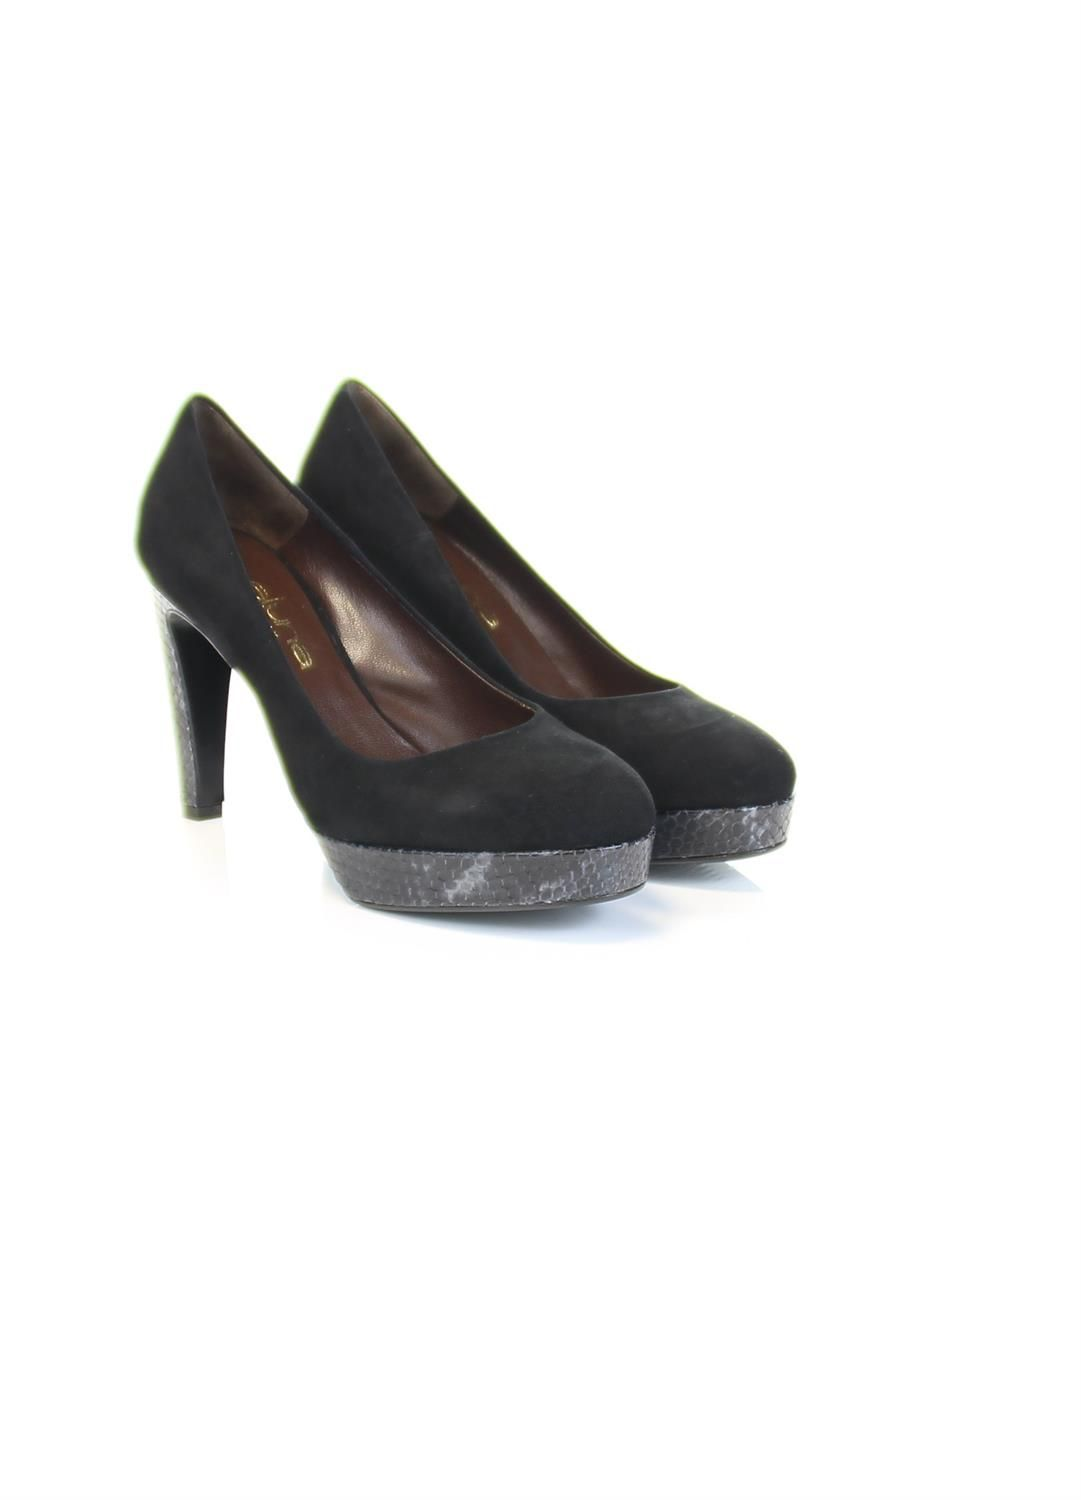 Evaluna 01 - Pumps - Dames - Donelli